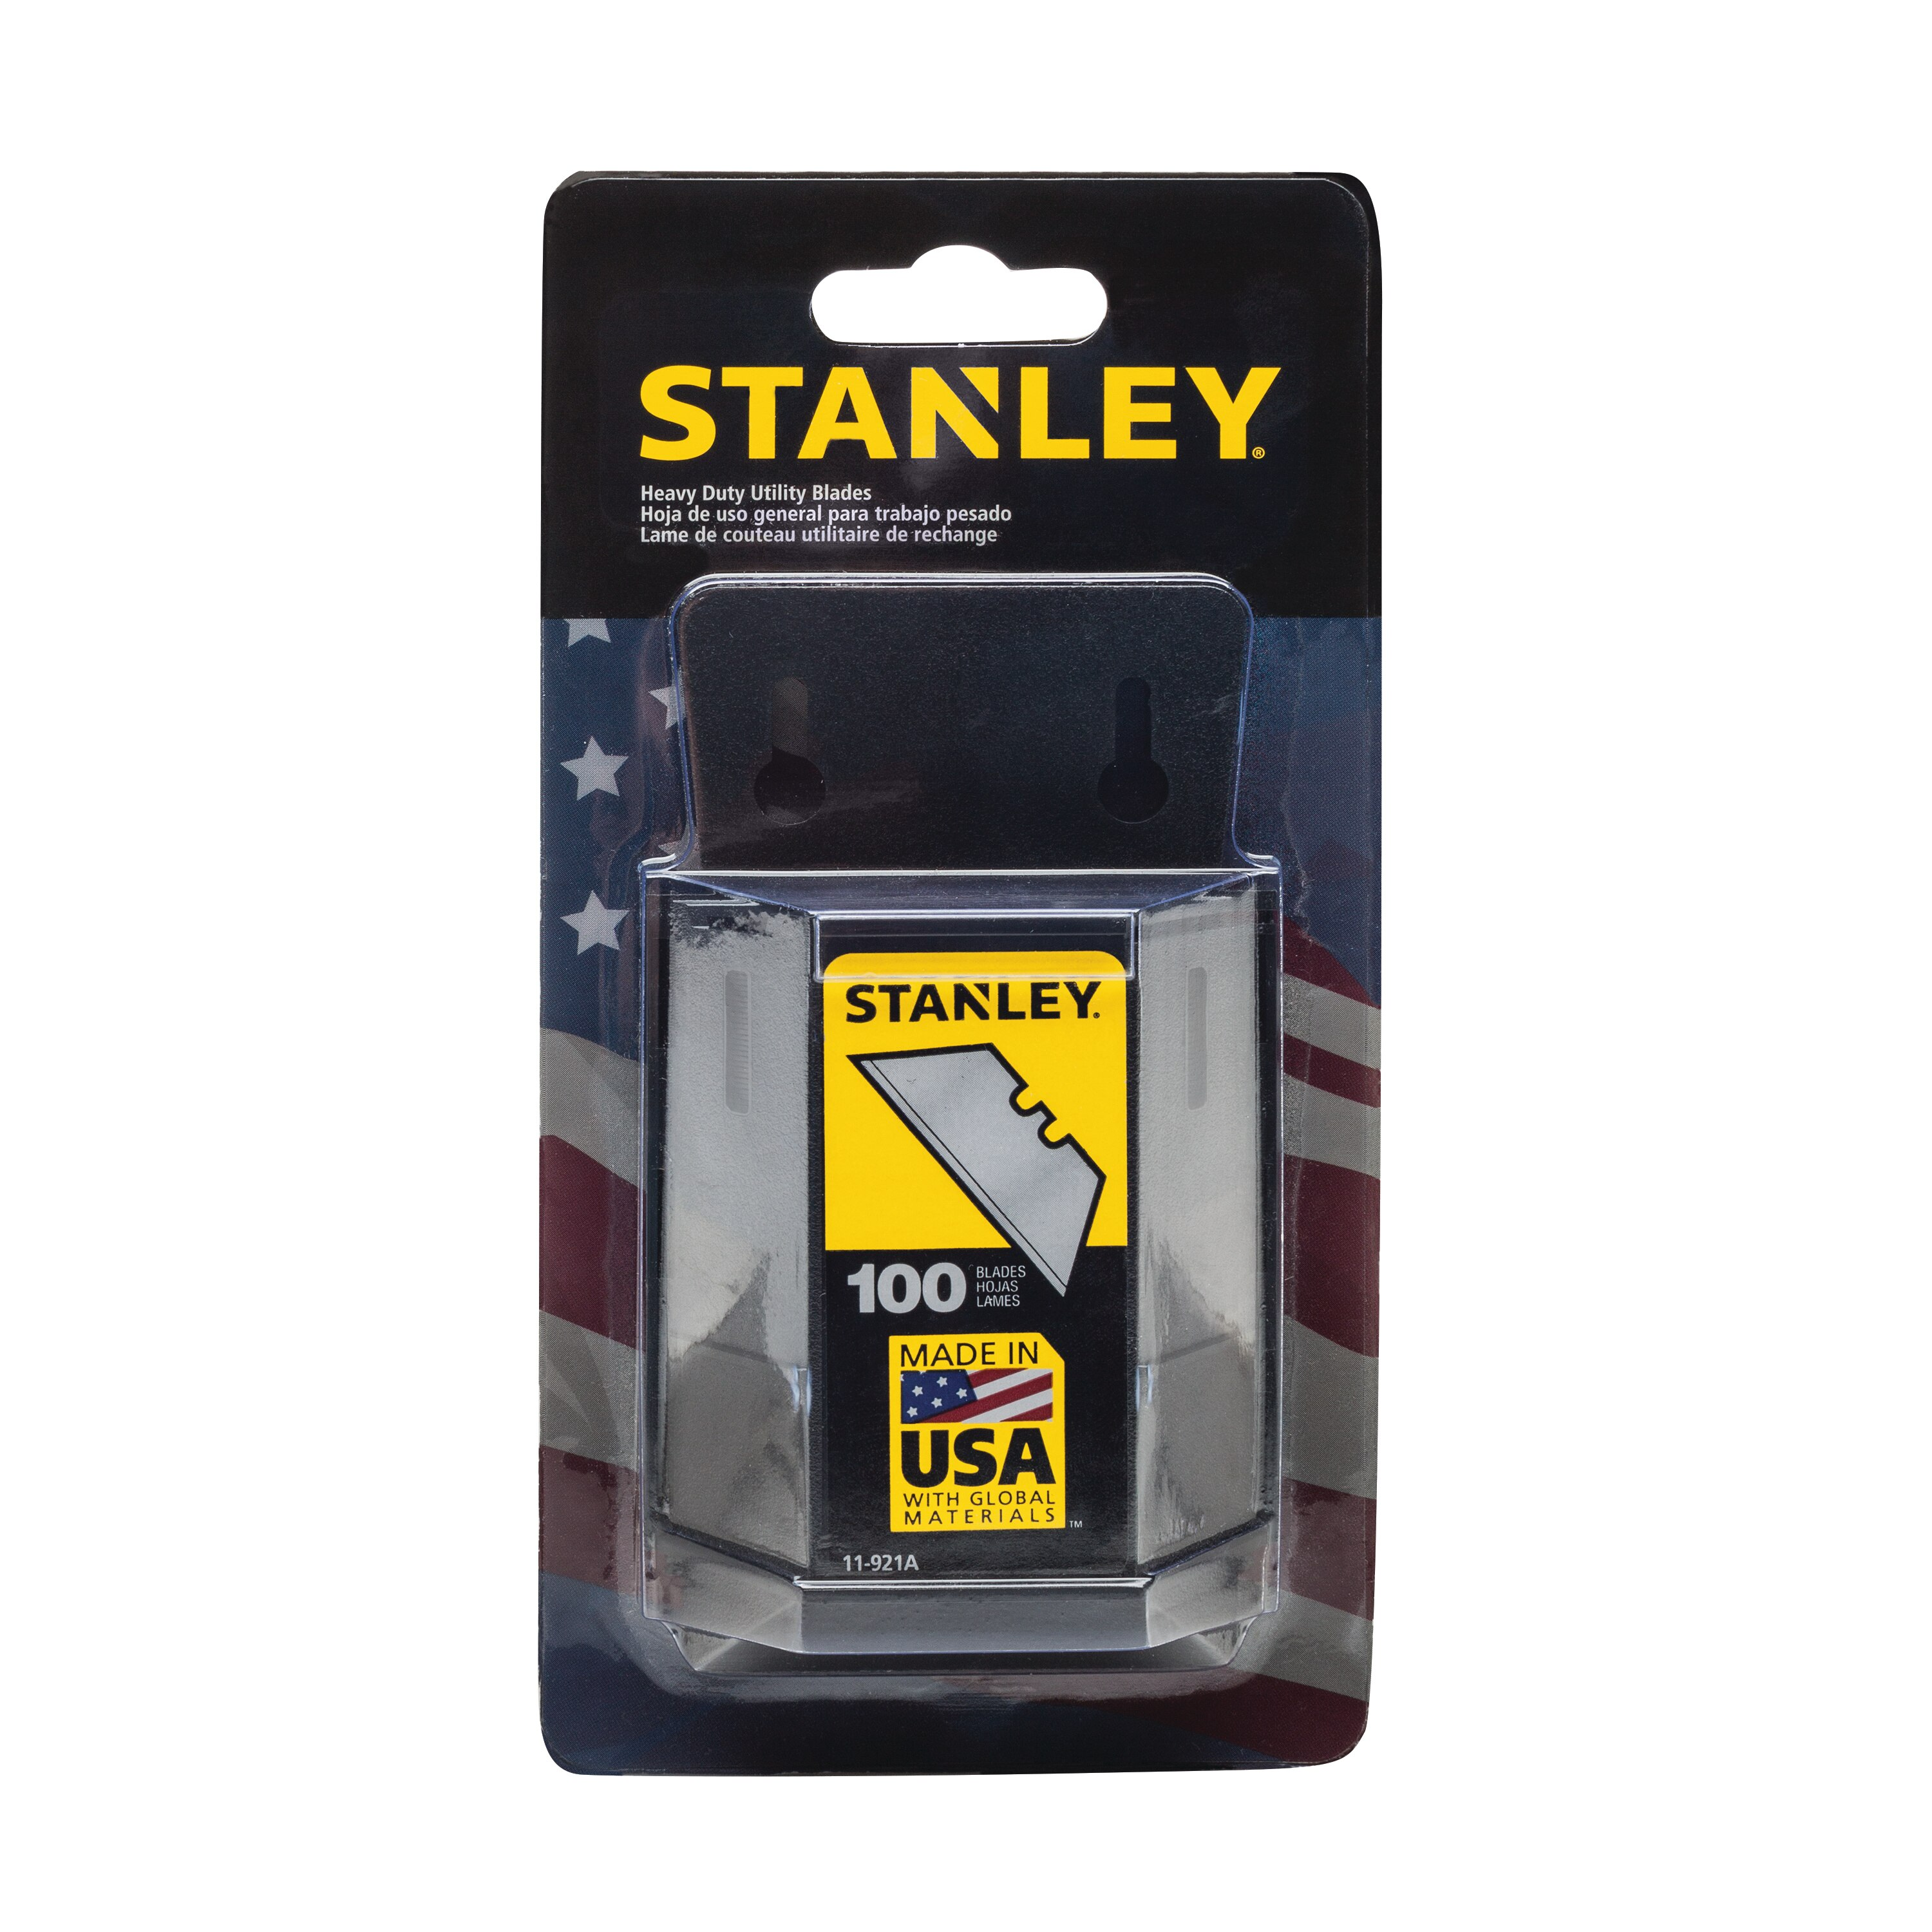 Stanley Tools - 100pack 1992 HeavyDuty Utility Blades with Dispenser - 11-921A